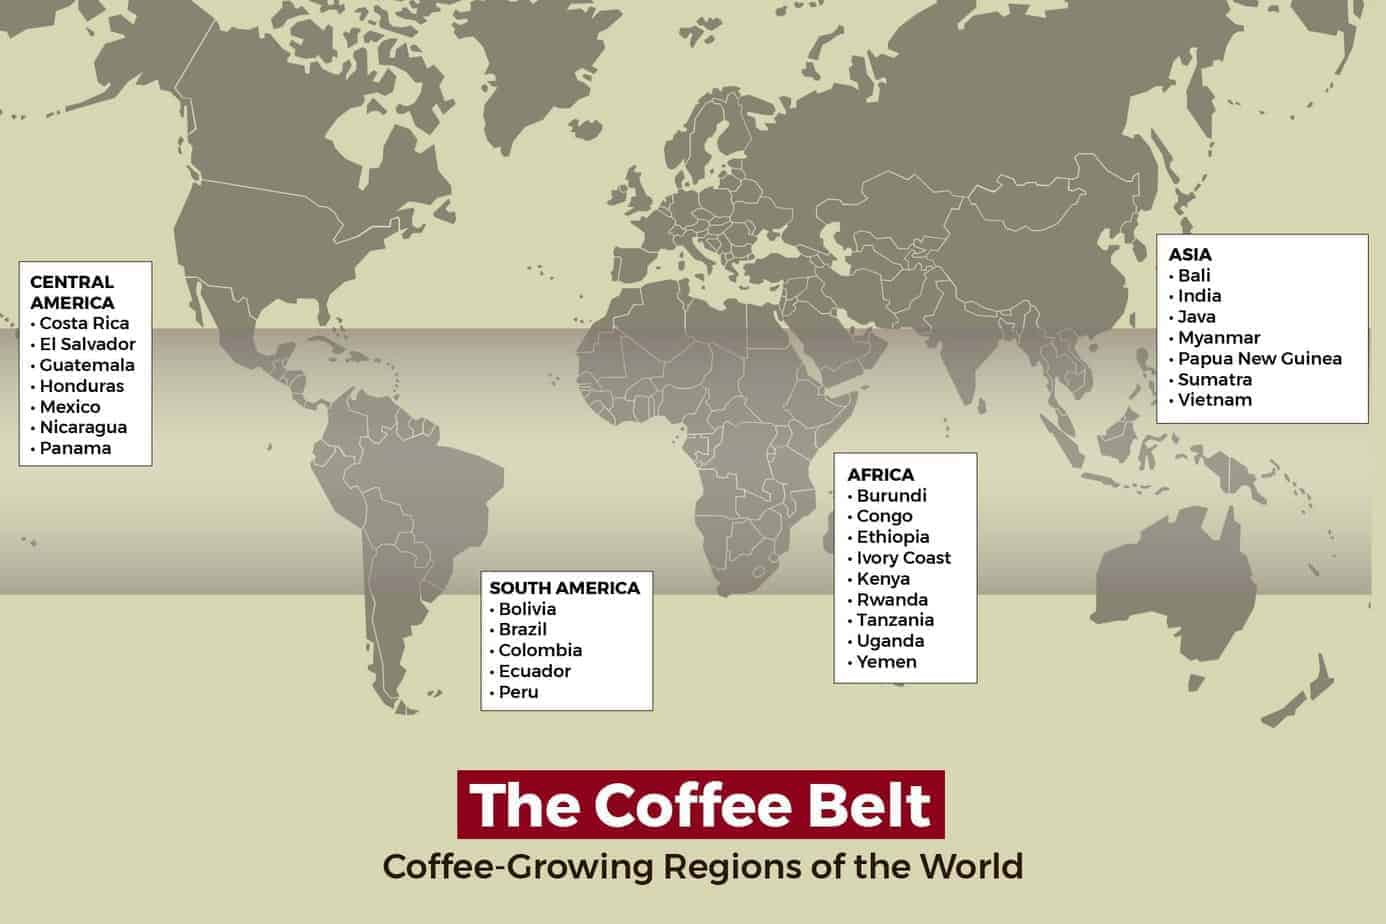 Map of the world showing regions near the equator where coffee is grown